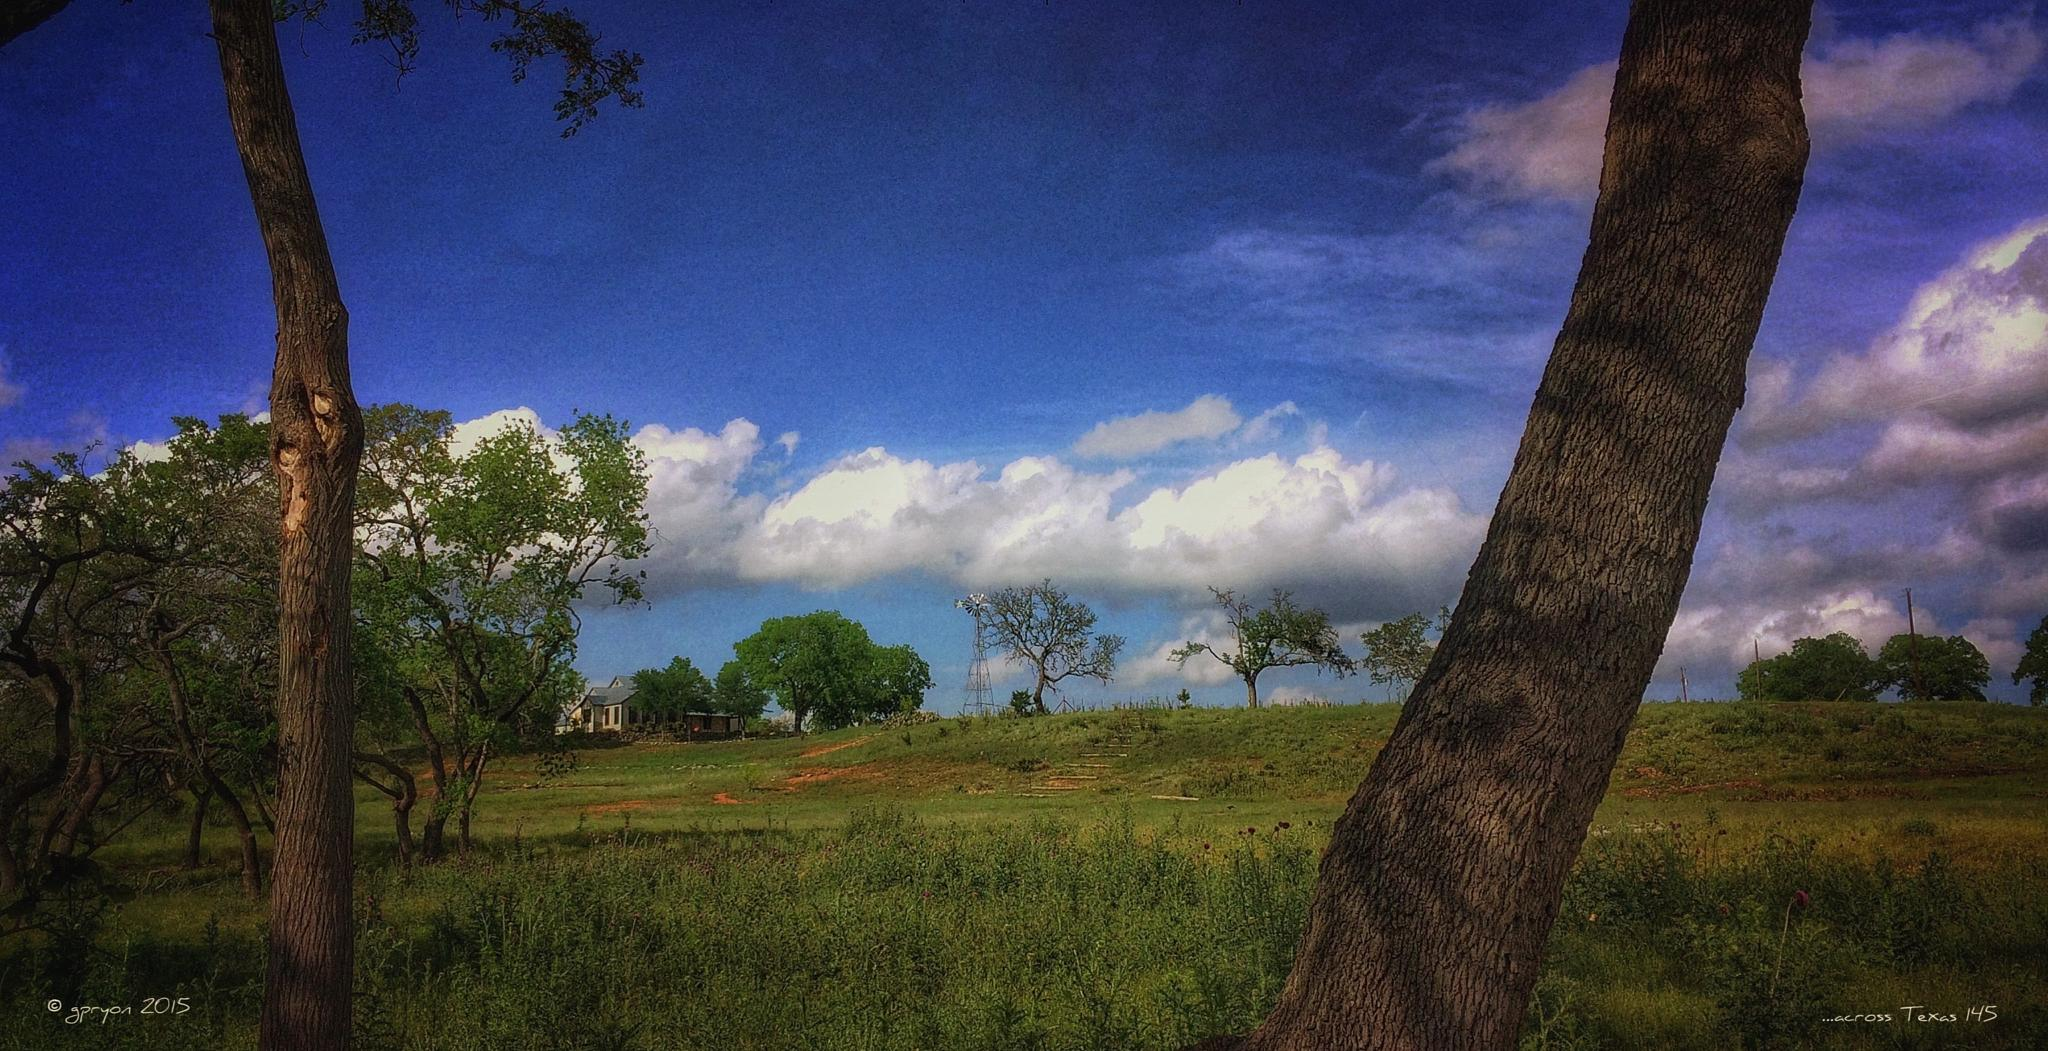 ...across Texas 145 by gpryon